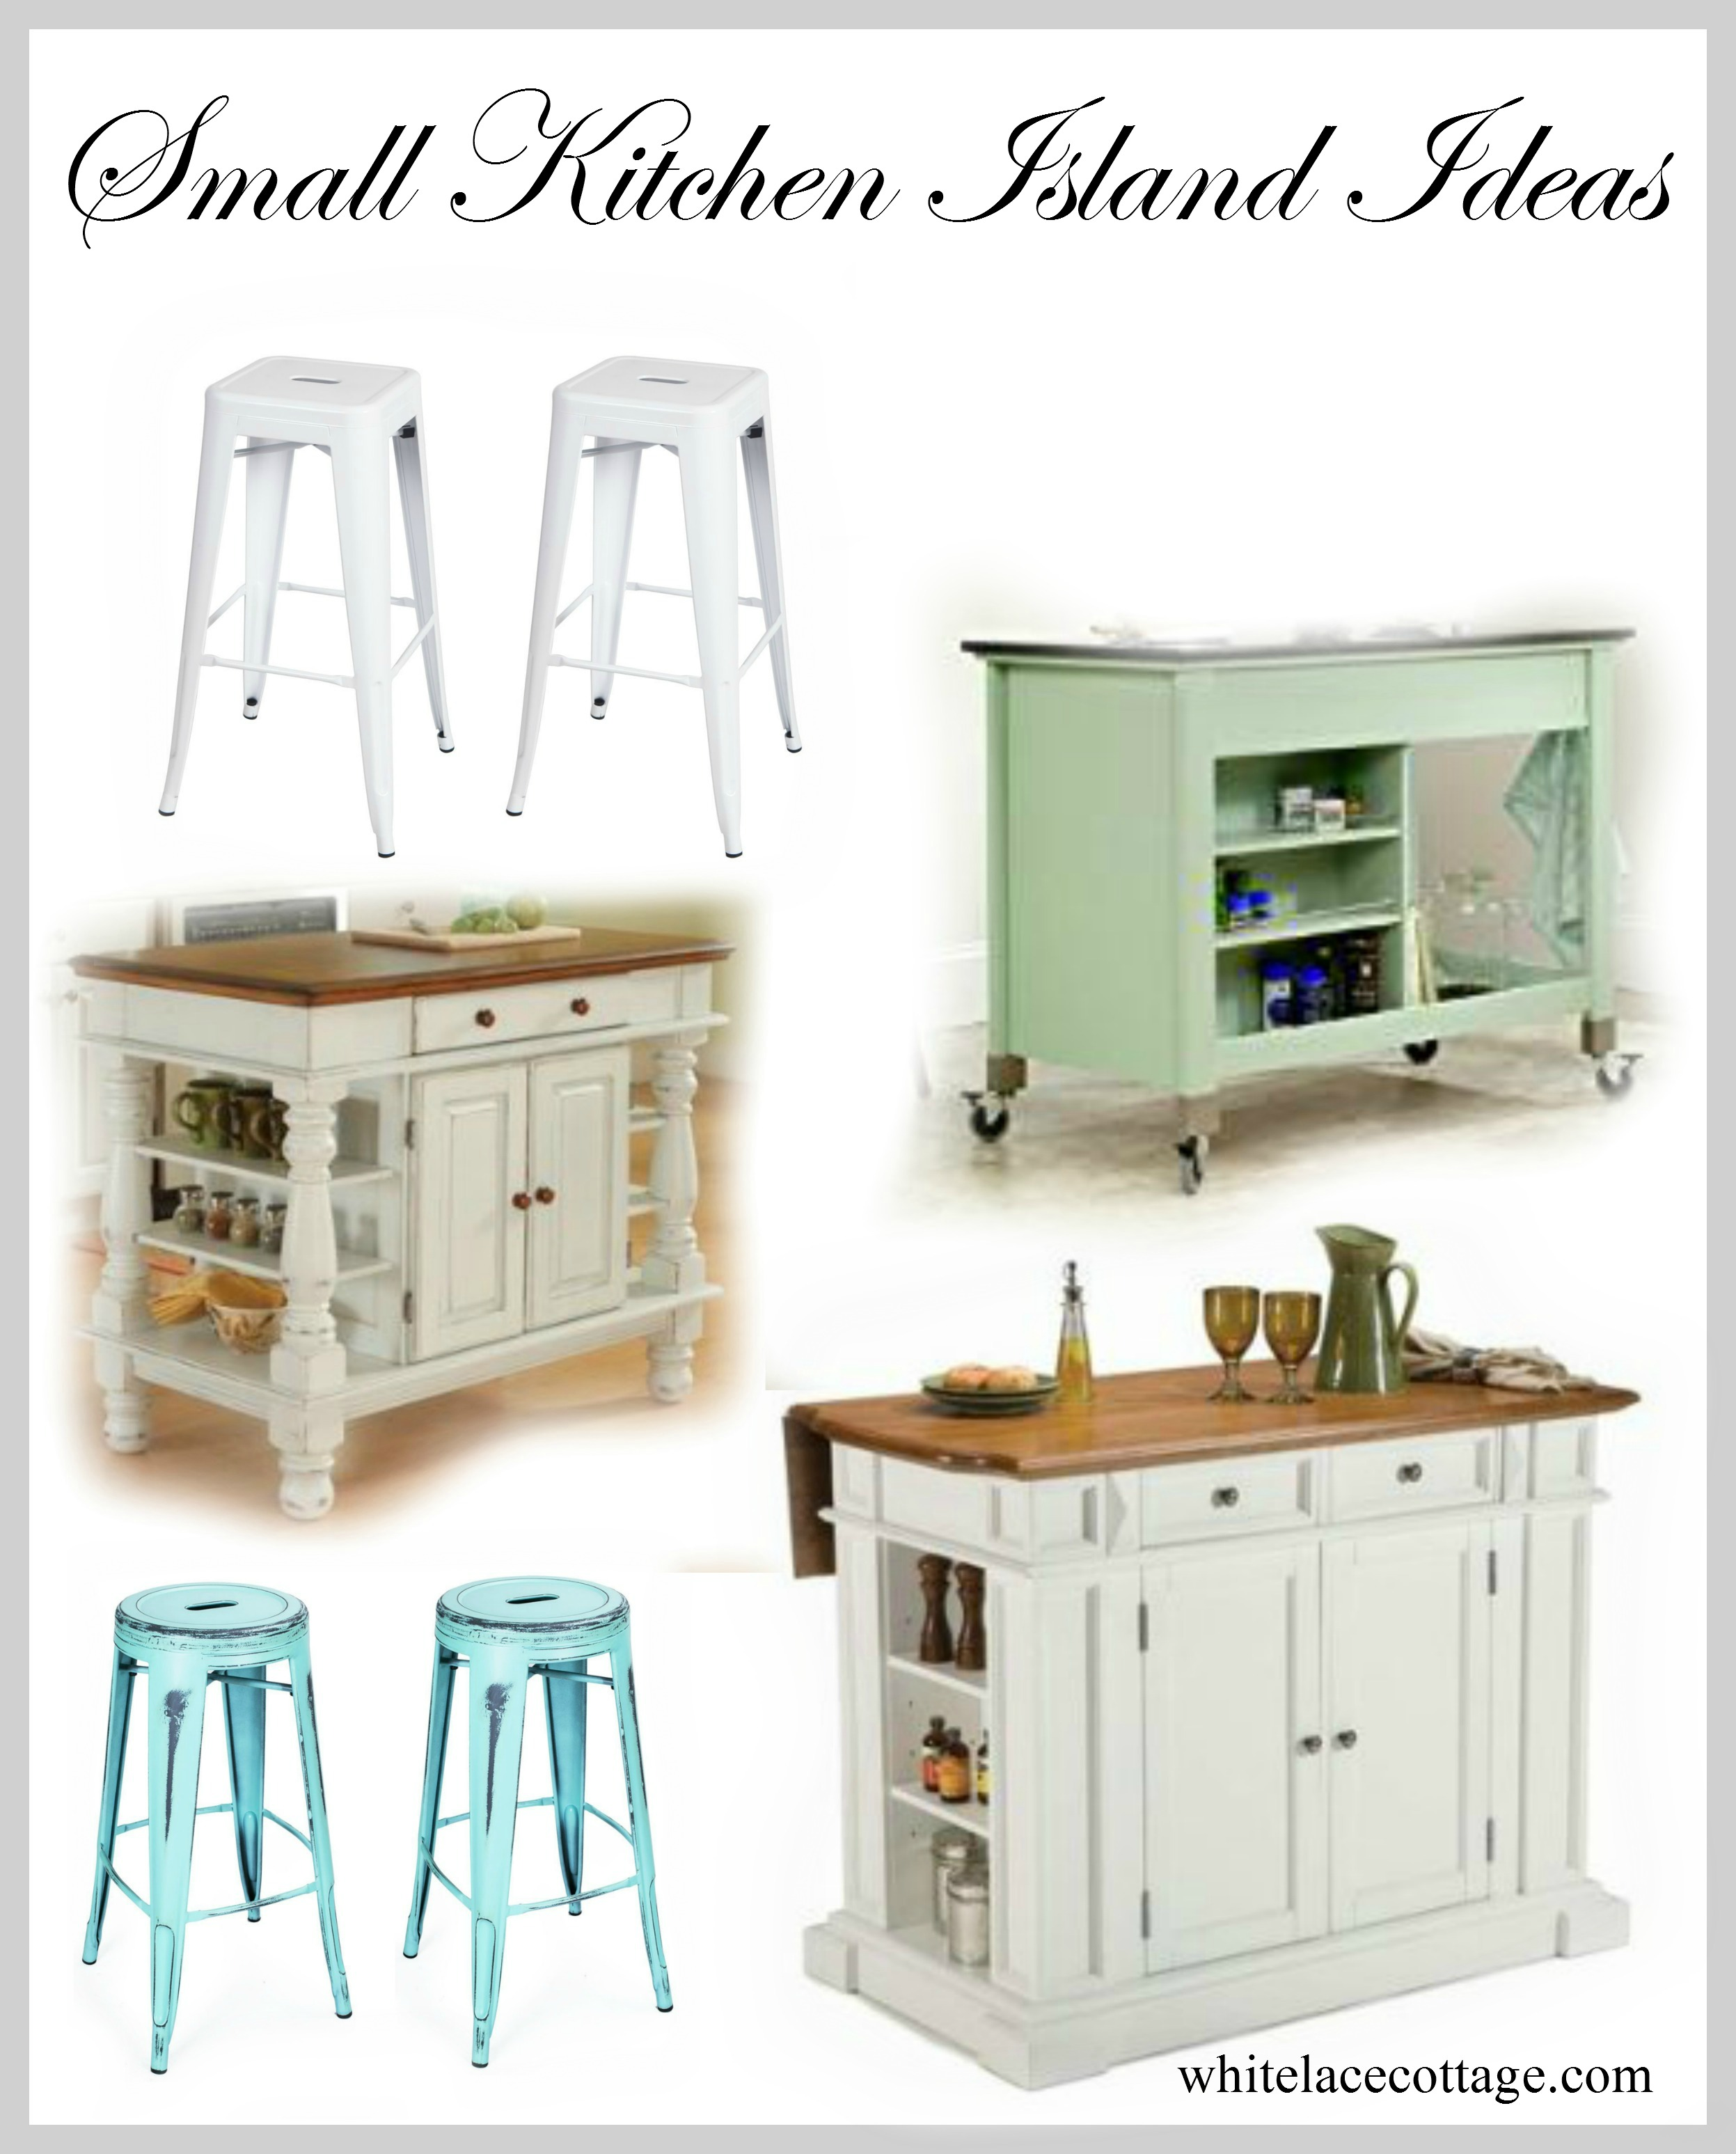 Small Kitchen Designs With Islands: Small Kitchen Island Ideas With Seating